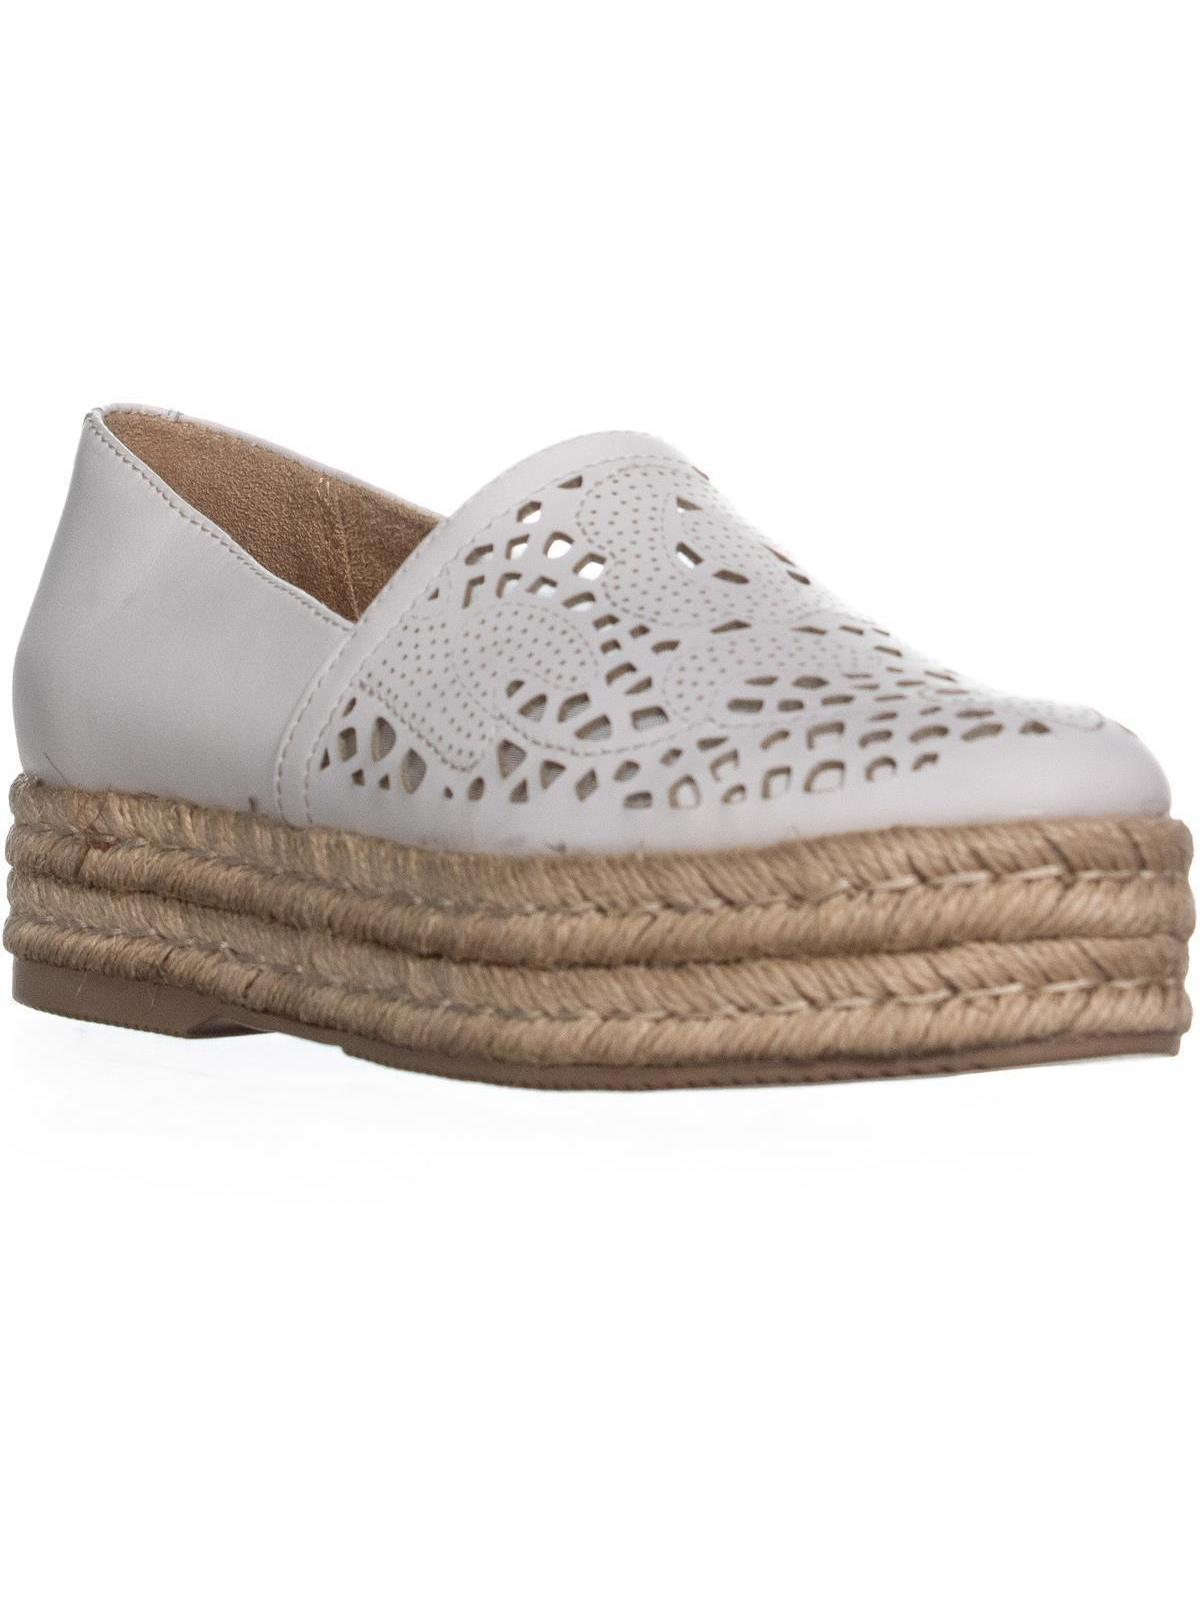 Womens naturalizer Thea Perforated Platform Espadrilles, White Leather